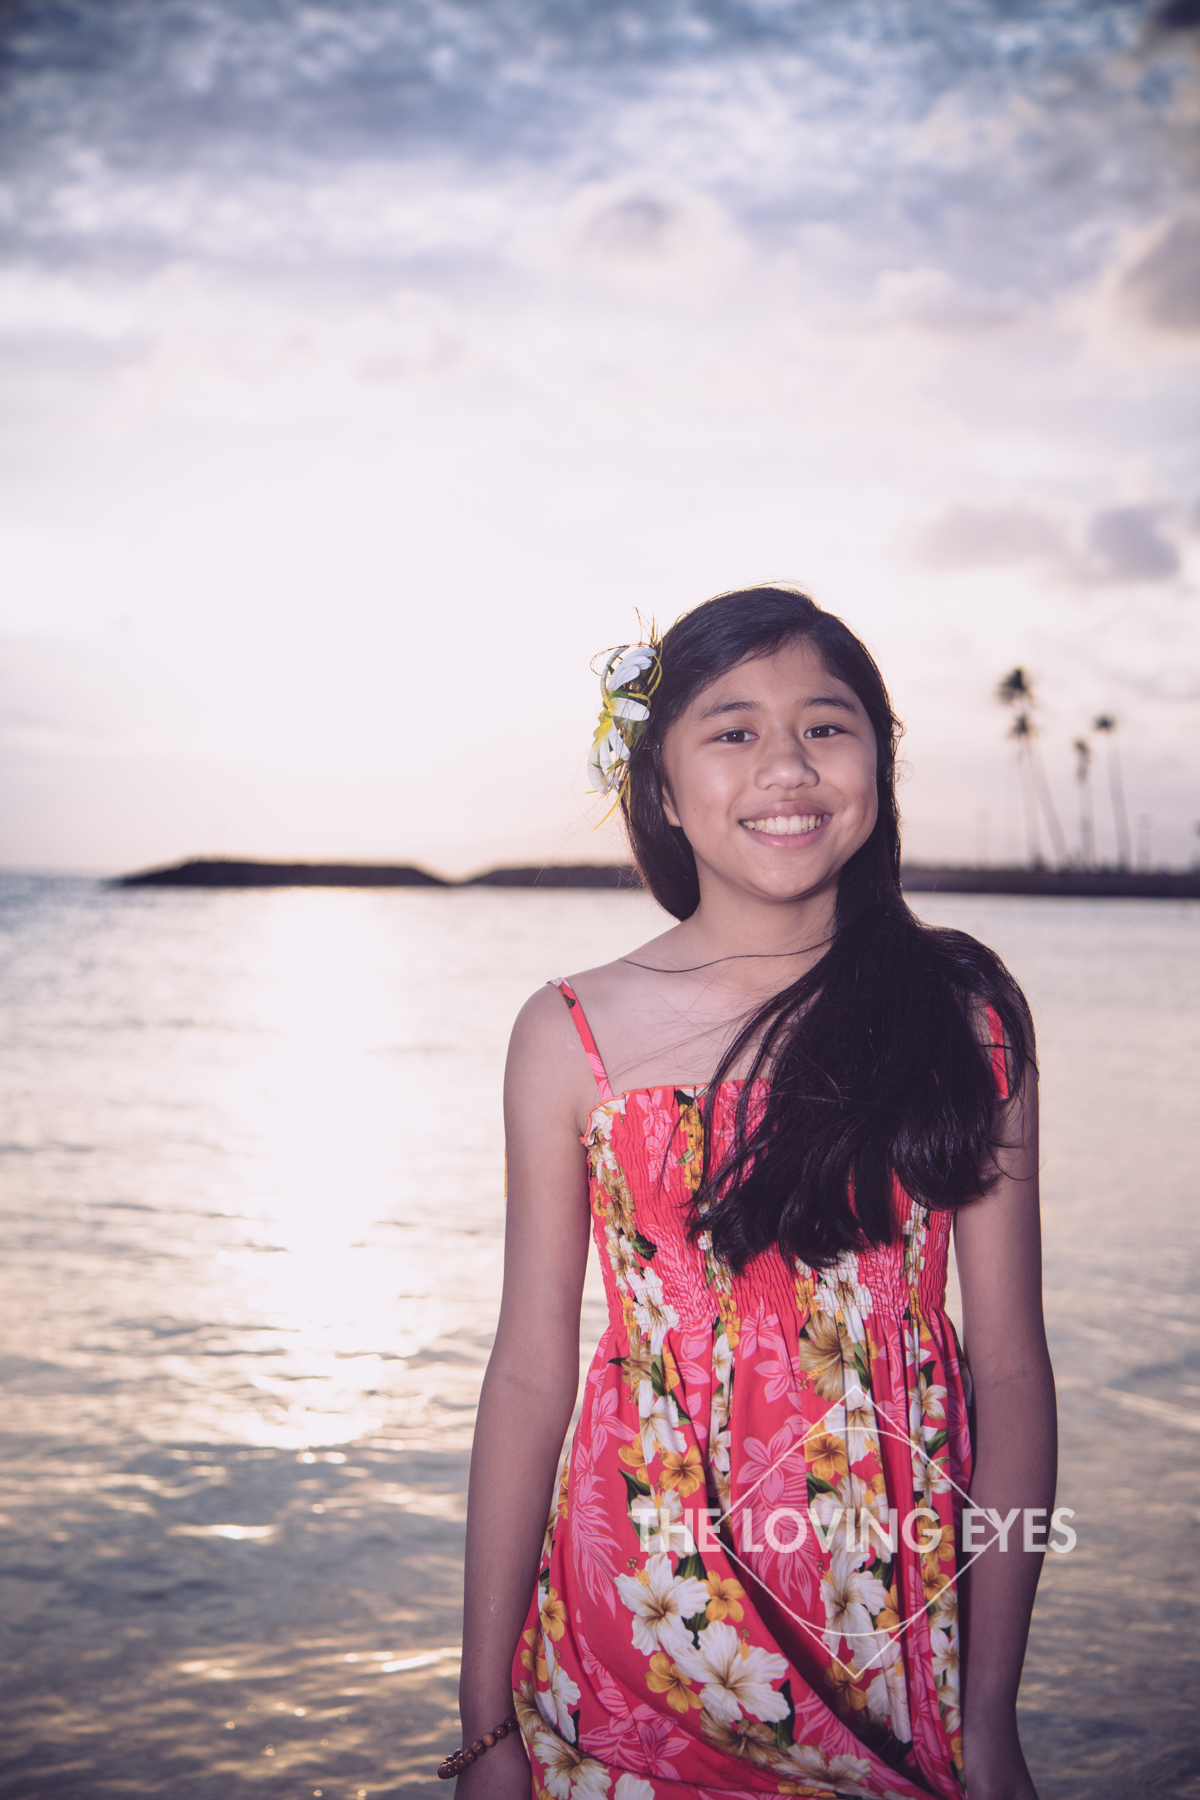 Child portrait on the beach during sunset at Ala Moana Beach Park in Hawaii